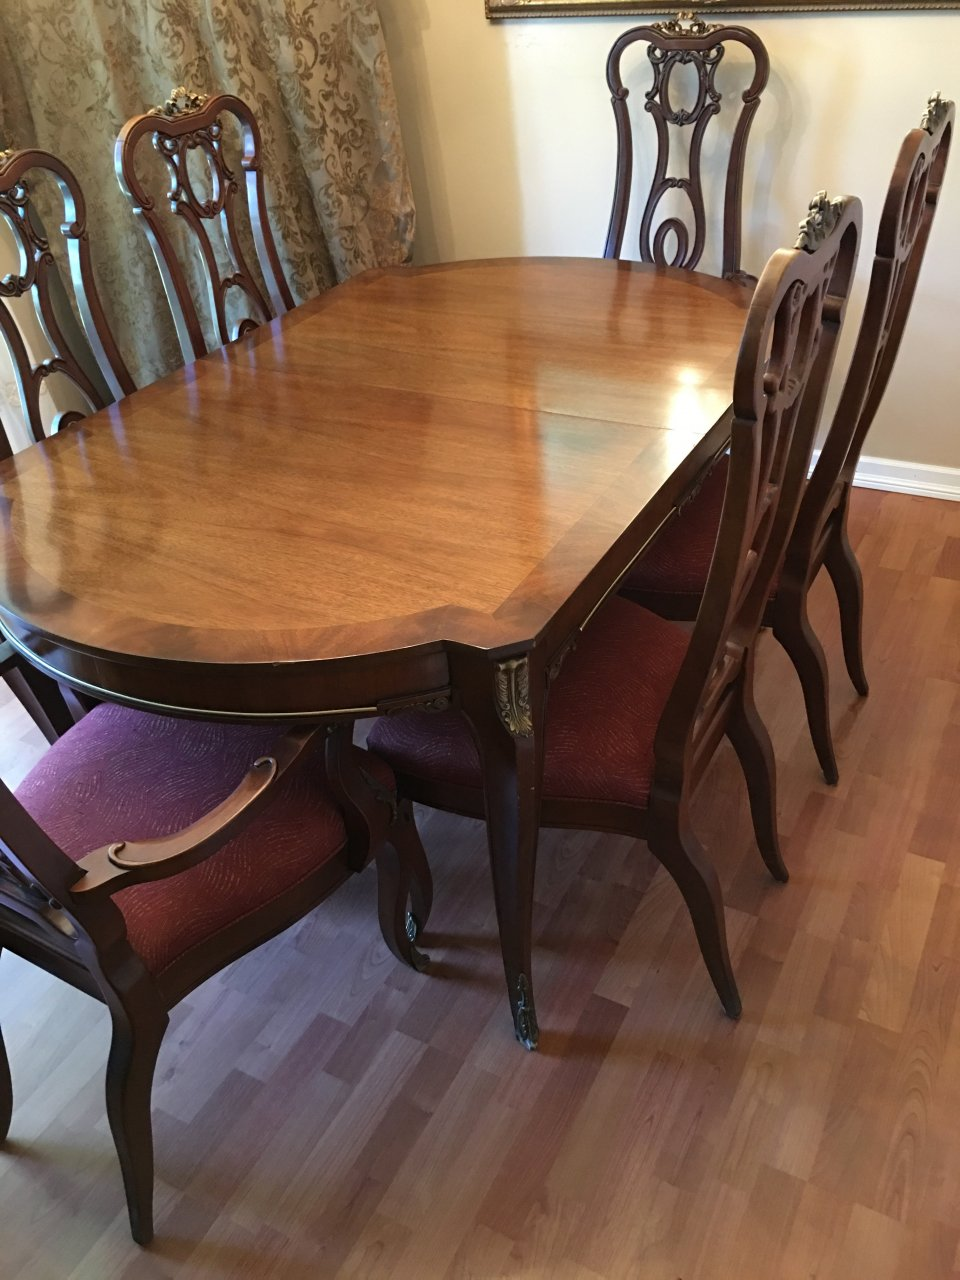 I Have Beautiful Antique 1948 Metz Dining Set Table And 6 Chairs Which We